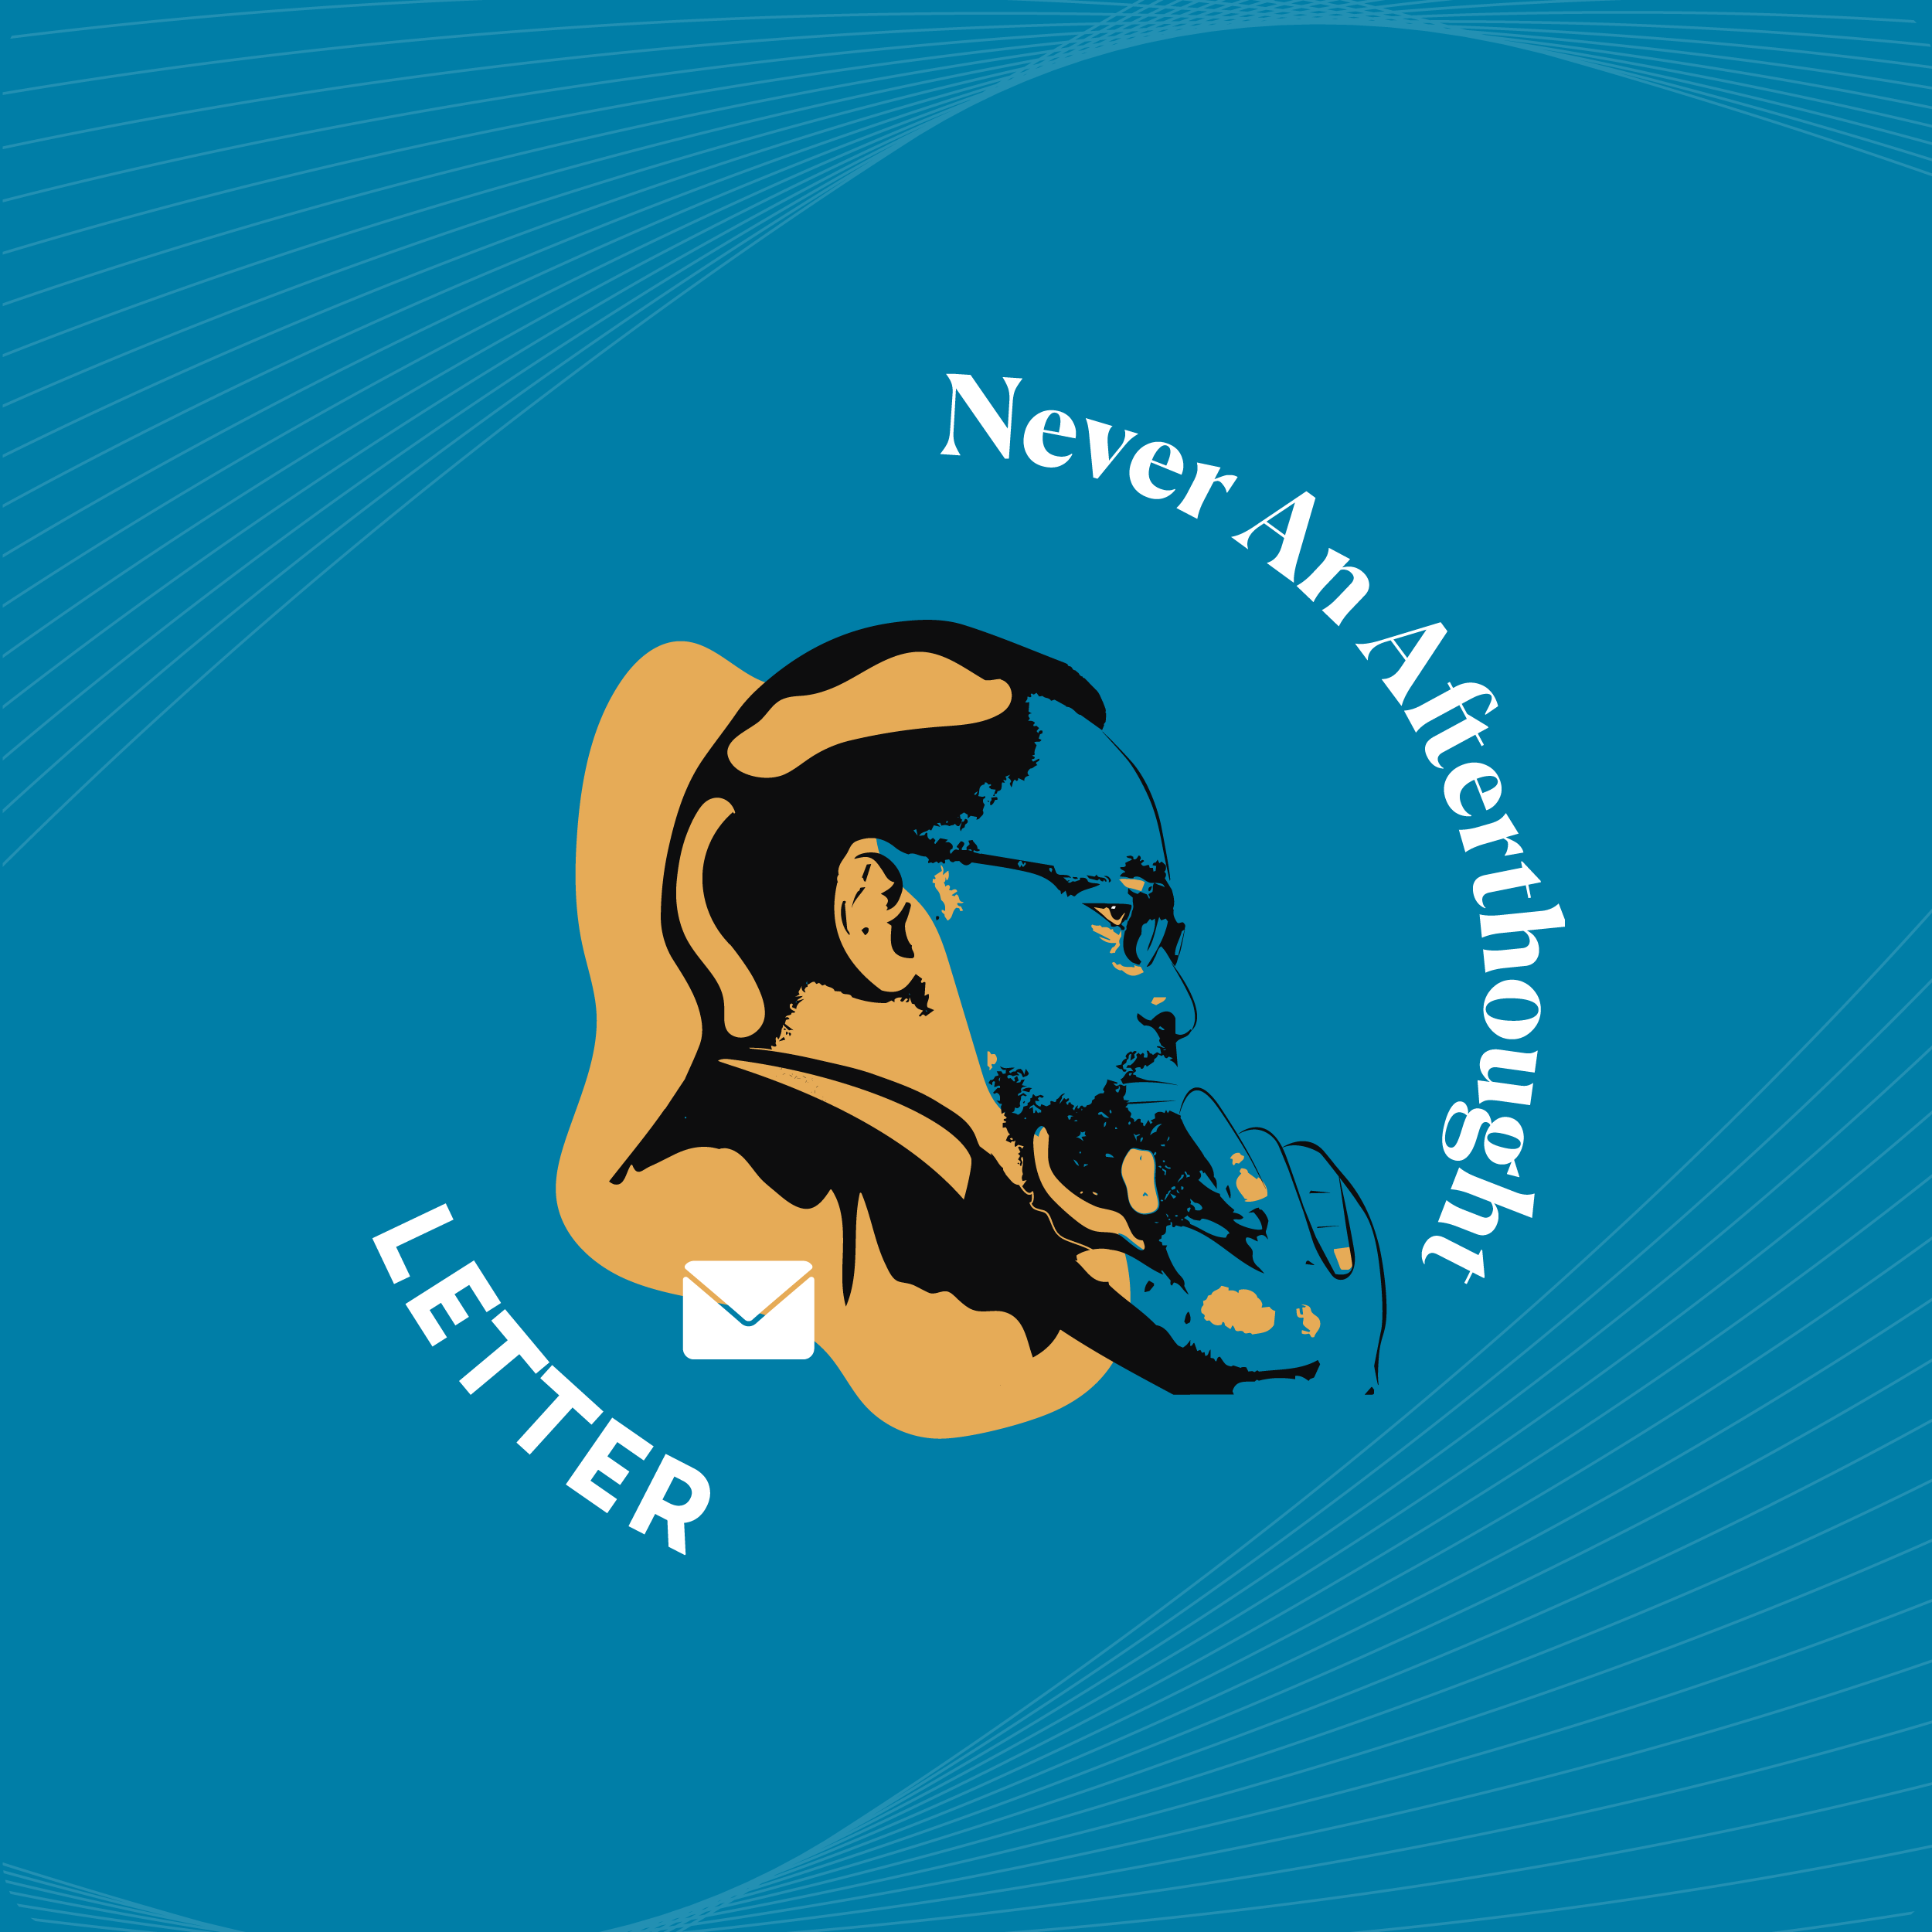 Never An Afterthought Letter cover image